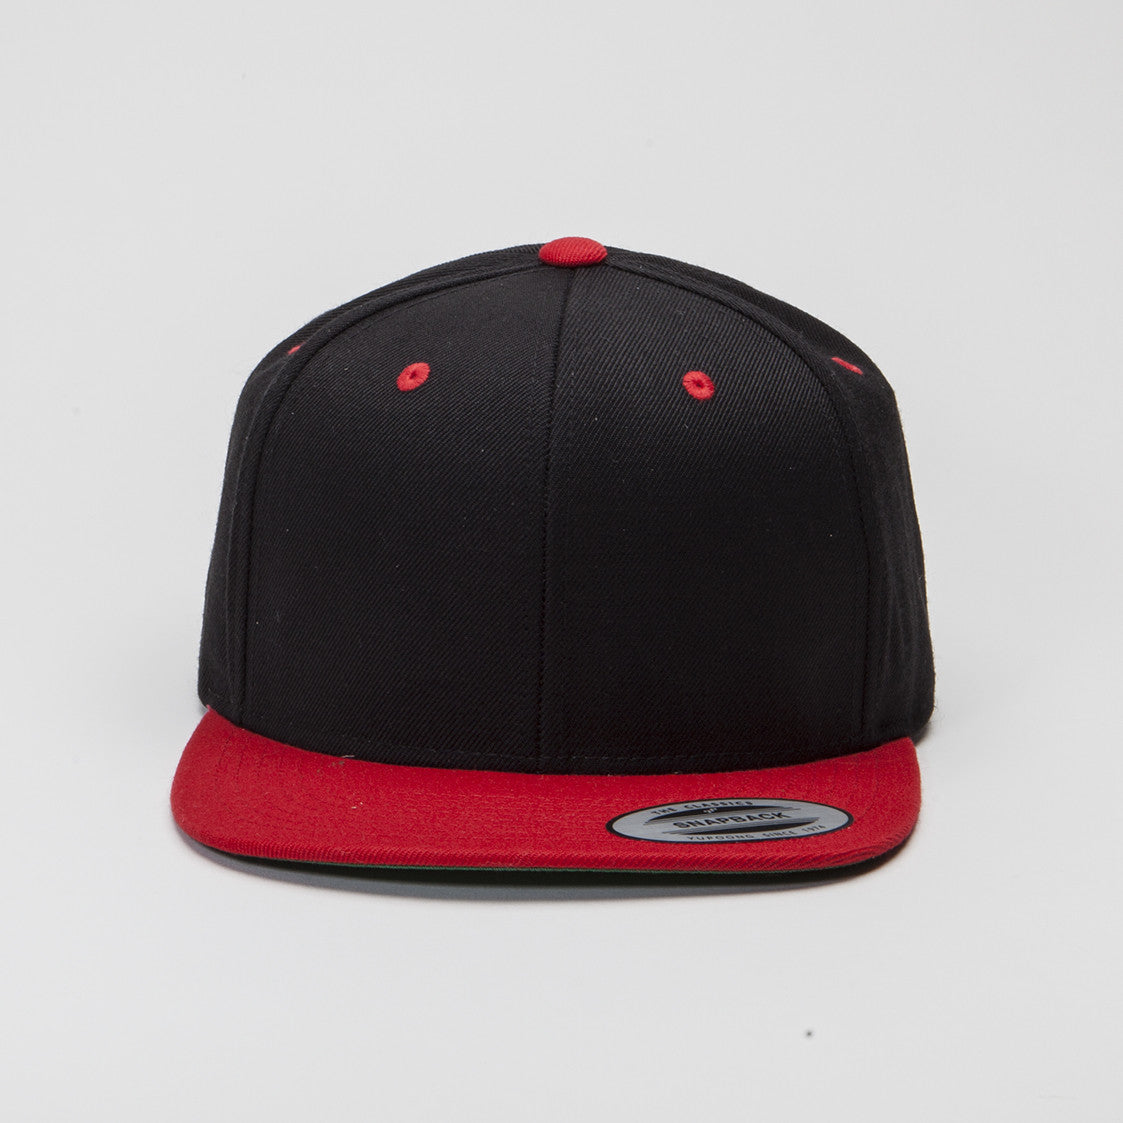 Yupoong The Classic Snapback Black Red  d05bb47790e